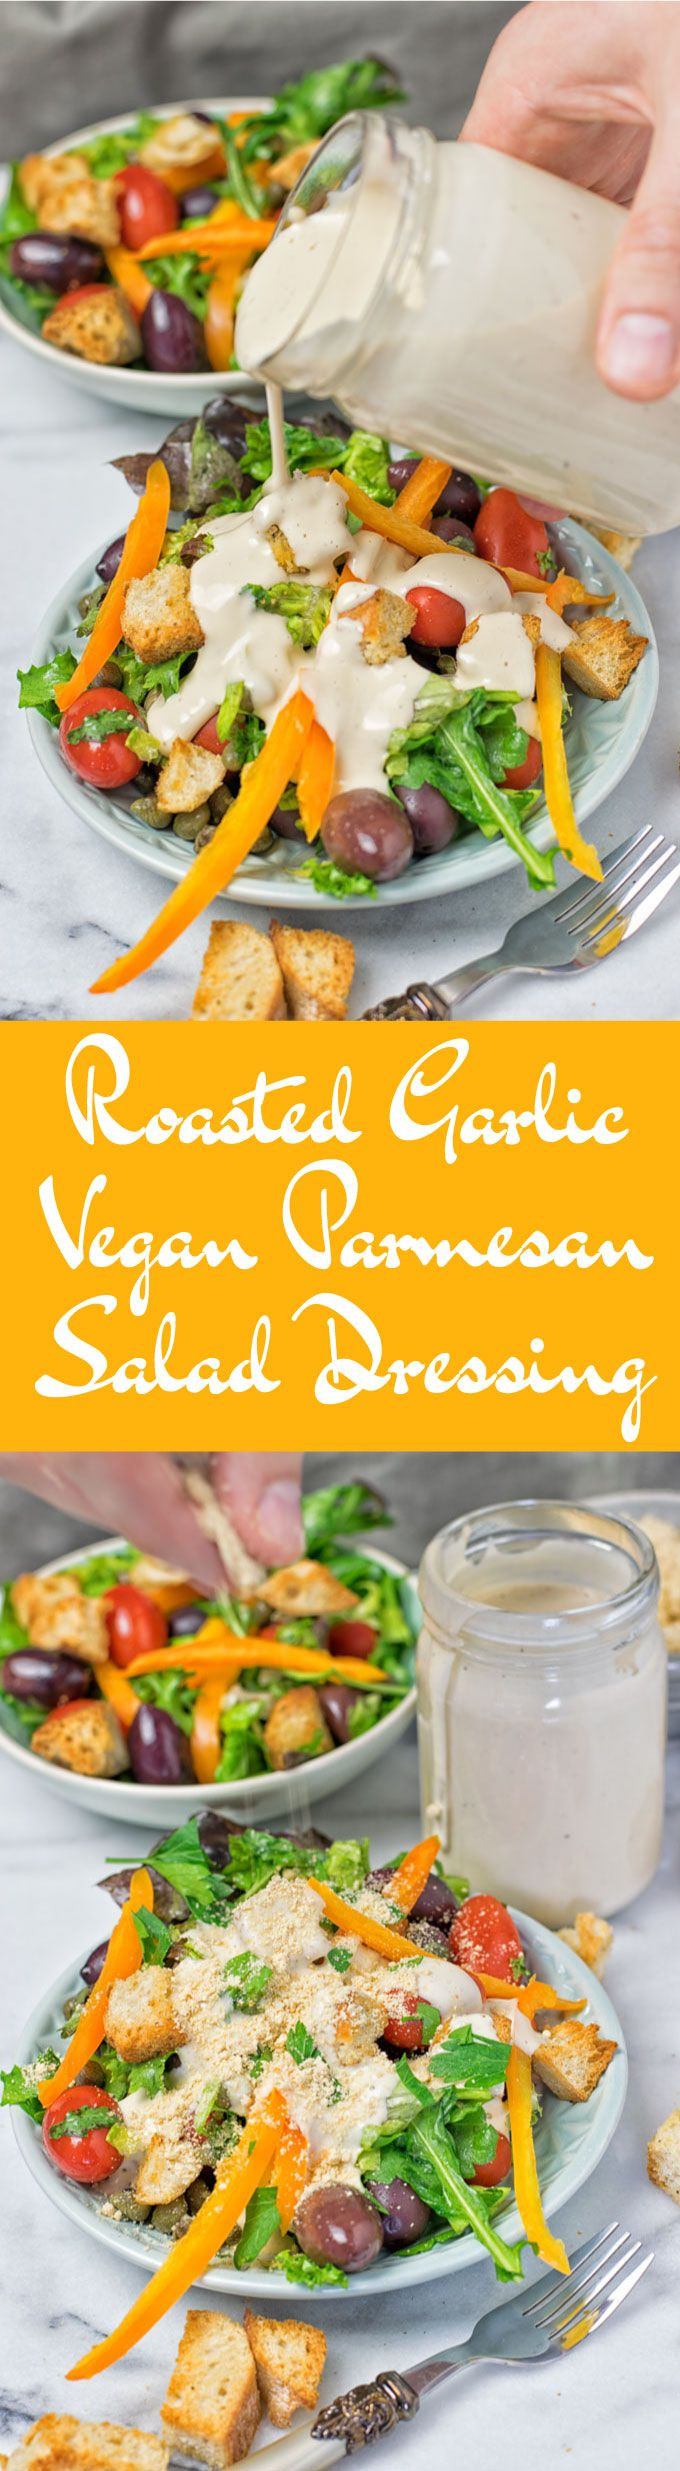 A Roasted Garlic Vegan Parmesan Salad Dressing – easy to make with only 5 ingredients in 2 easy steps. This will be your new vegan salad dressing to splash over